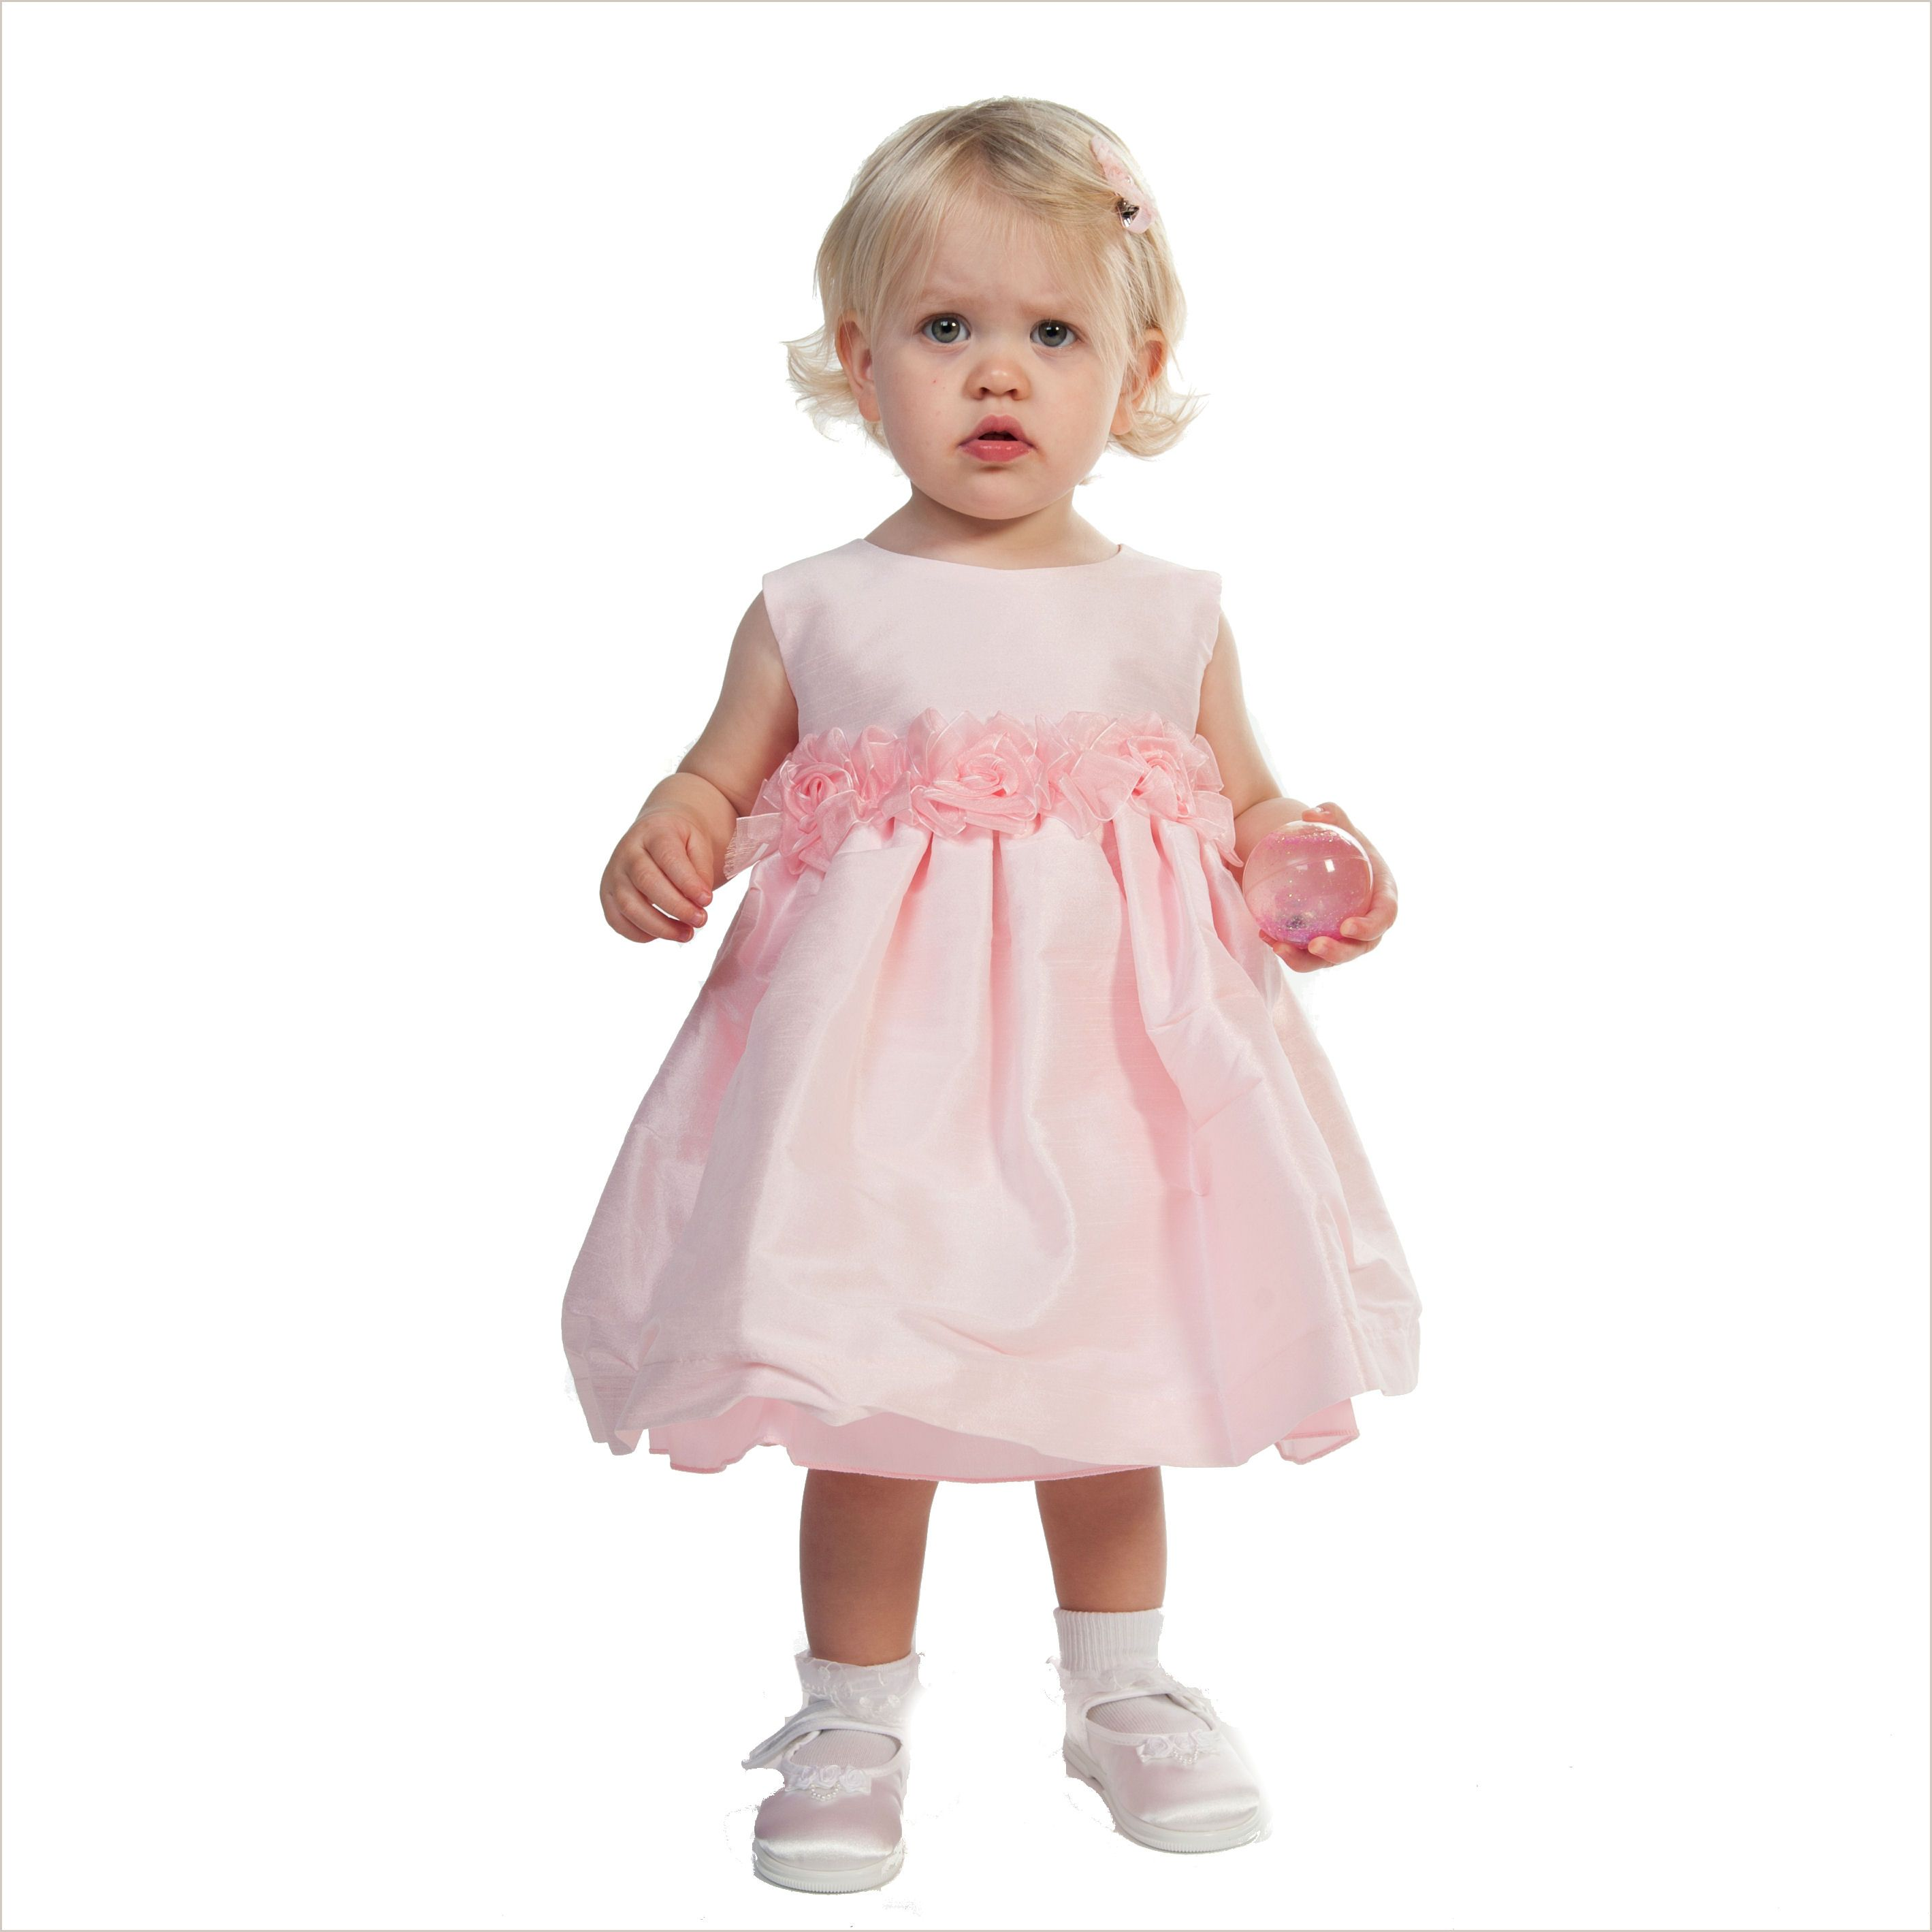 Flower girl dresses google search wedding pinterest flower girl dresses ombrellifo Gallery